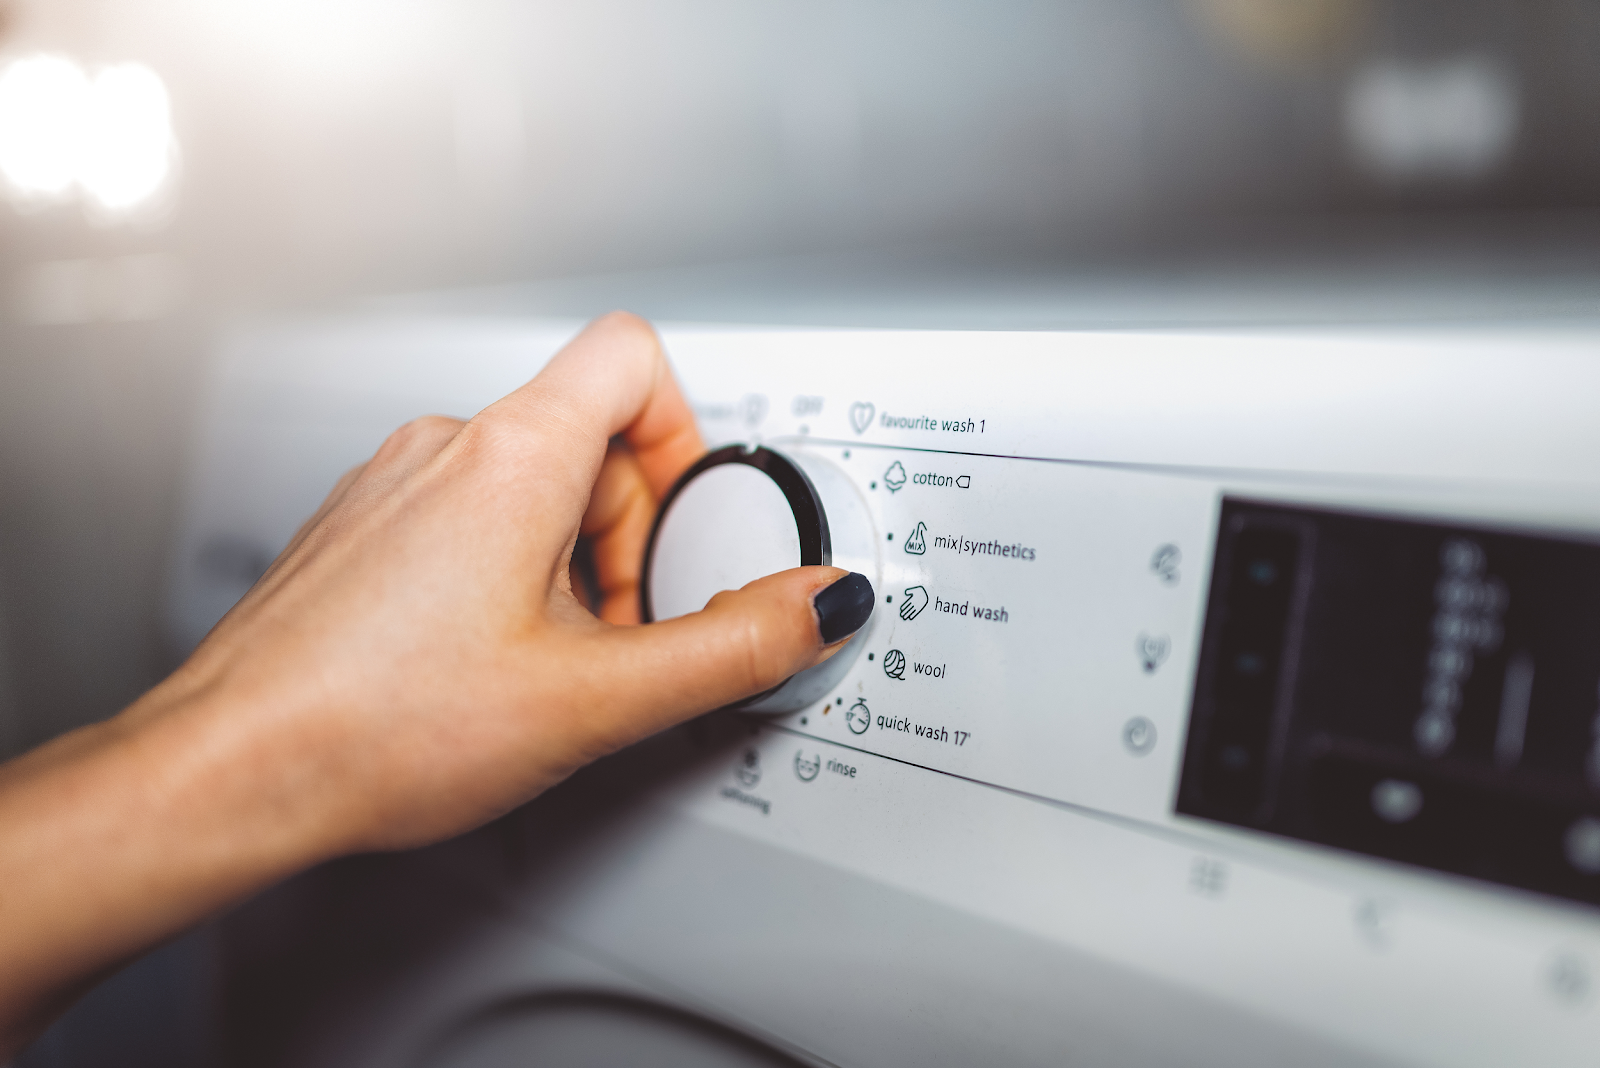 Homeowner adjusting the settings of their washing machine